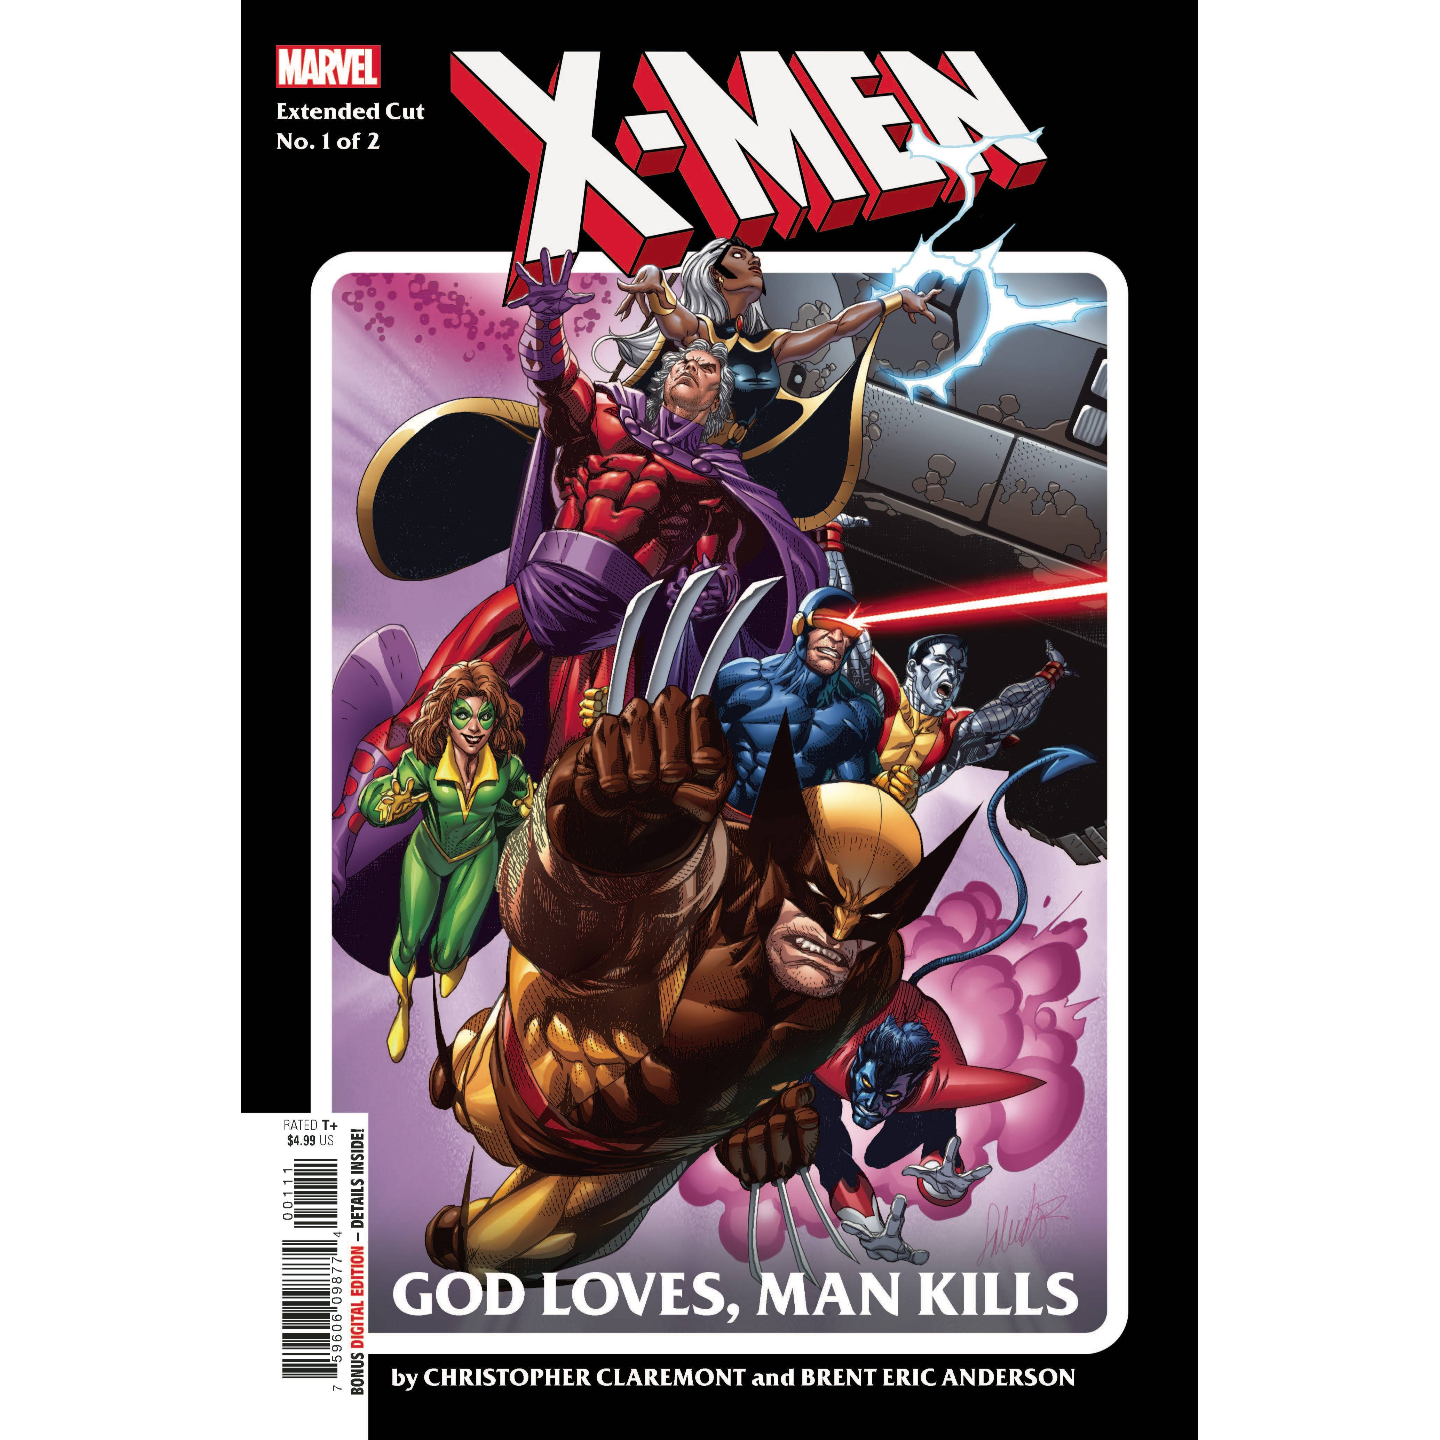 X-MEN GOD LOVES MAN KILLS EXTENDED CUT #1 (OF 2)